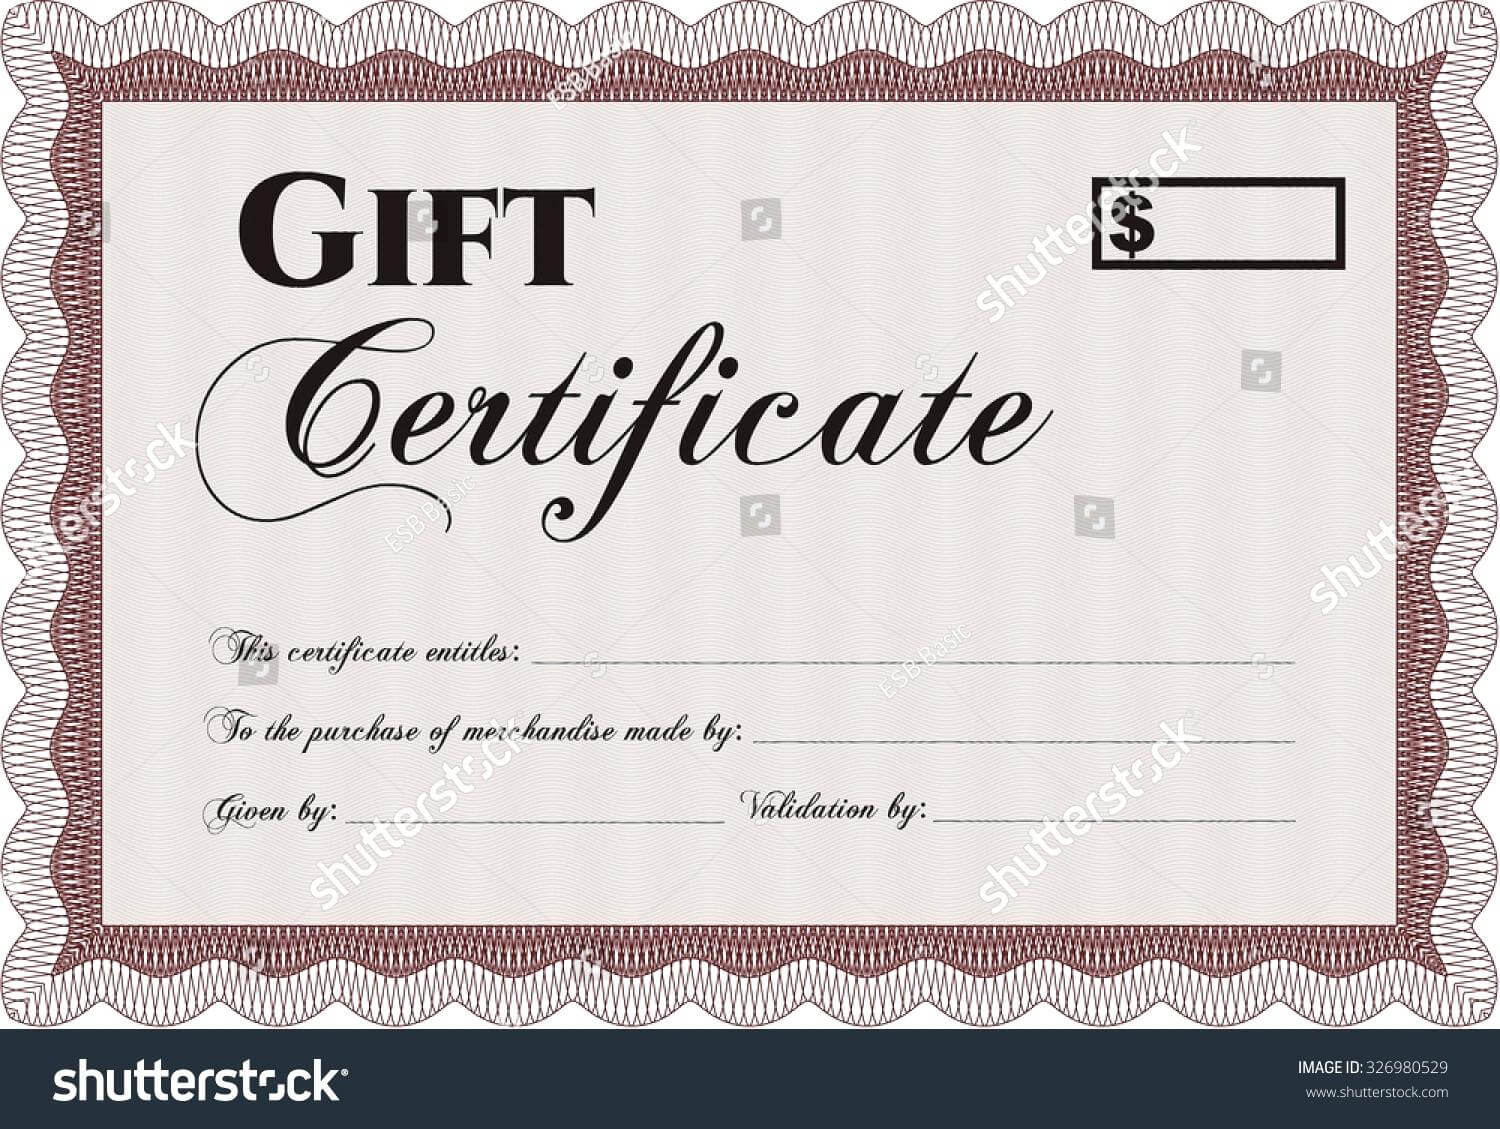 Best Ideas For This Certificate Entitles The Bearer Template With Regard To This Certificate Entitles The Bearer To Template